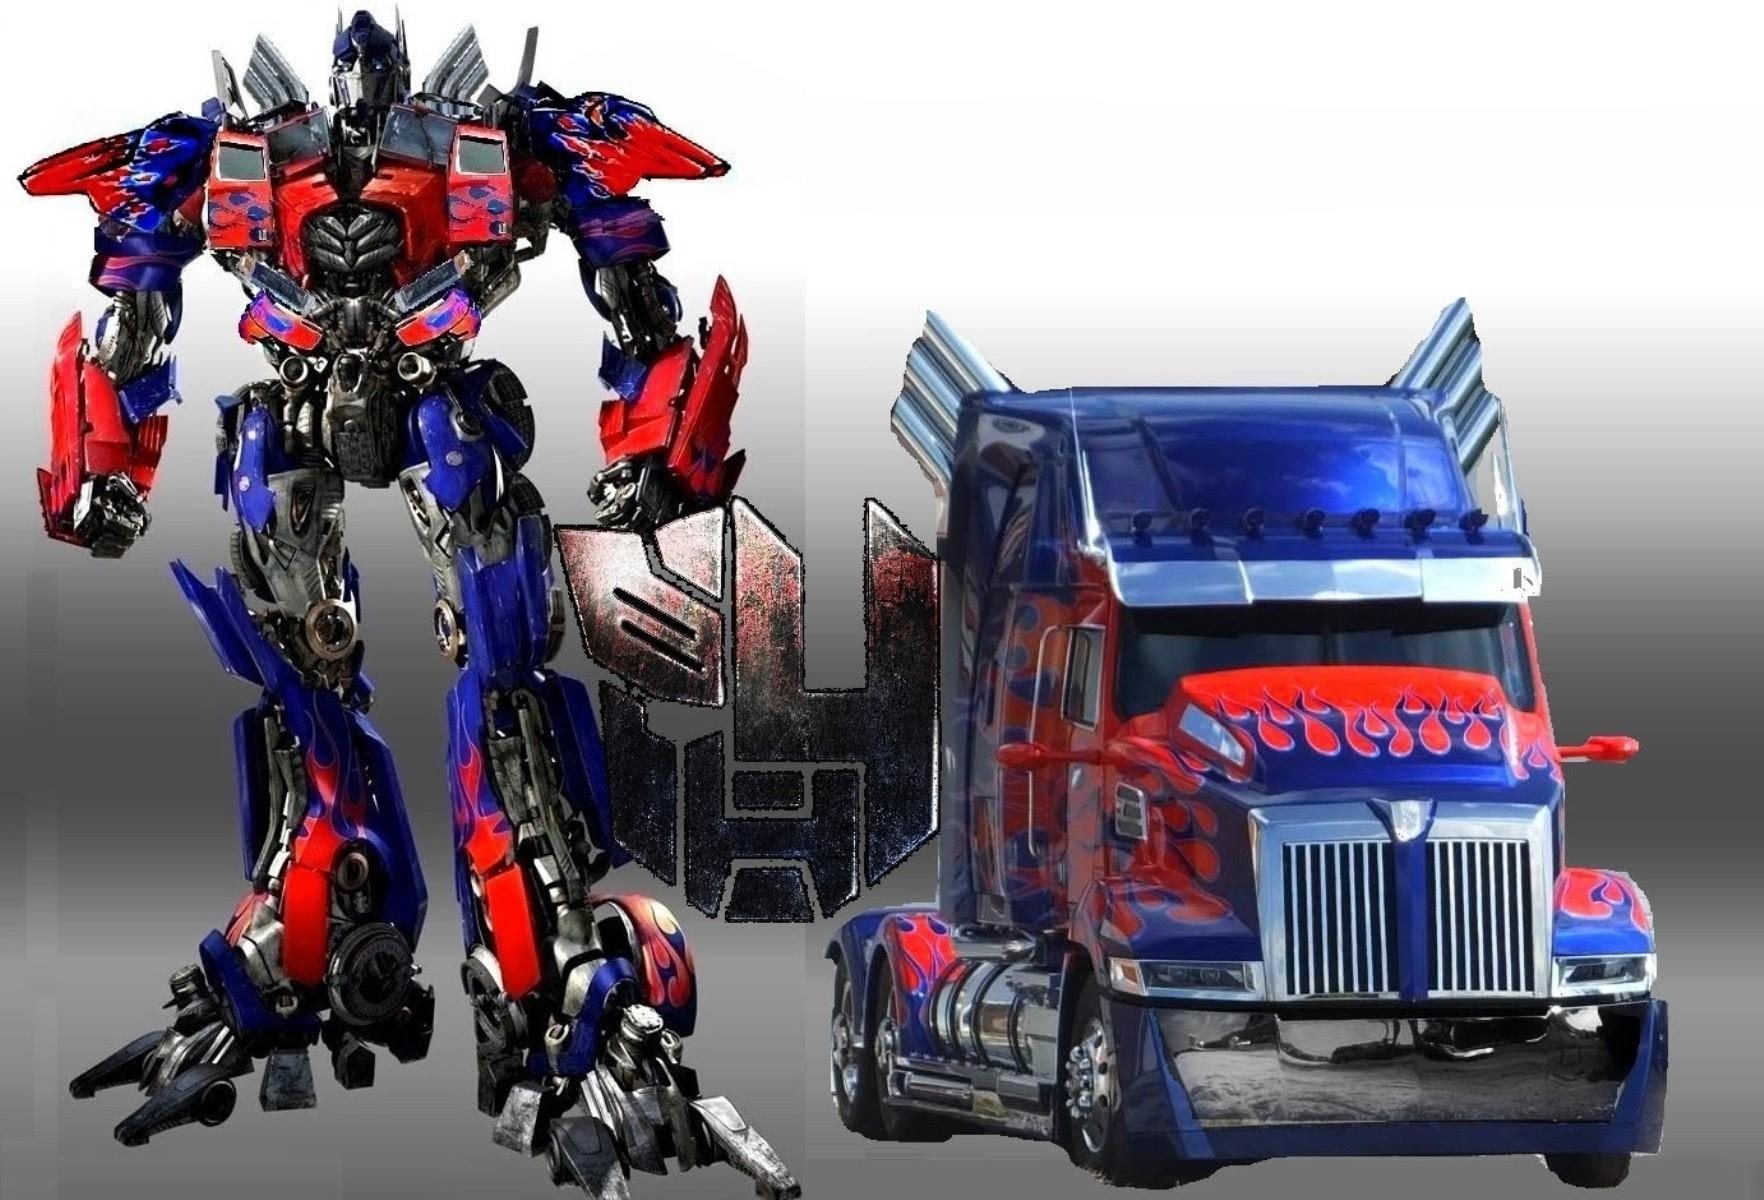 Do Transformers get life or car insurance?